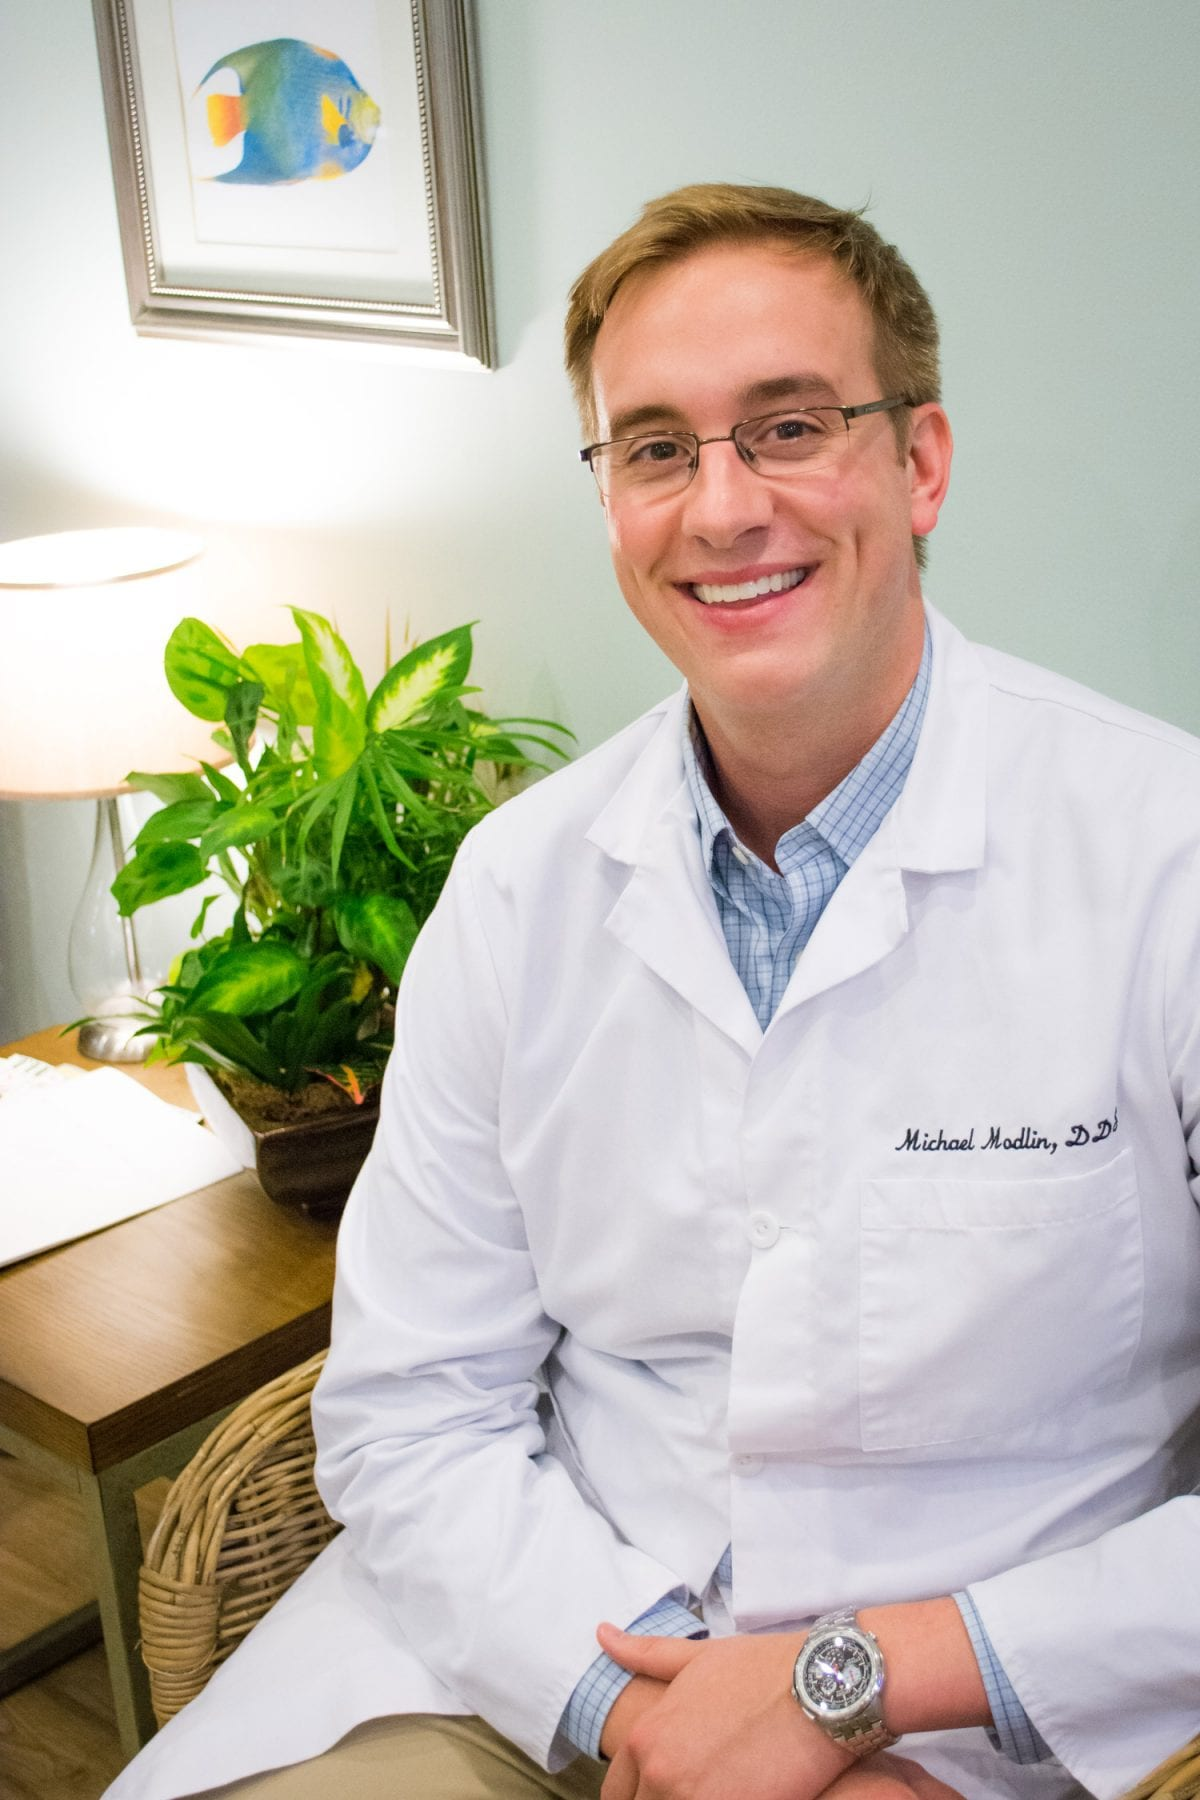 Dr. Mike Modlin